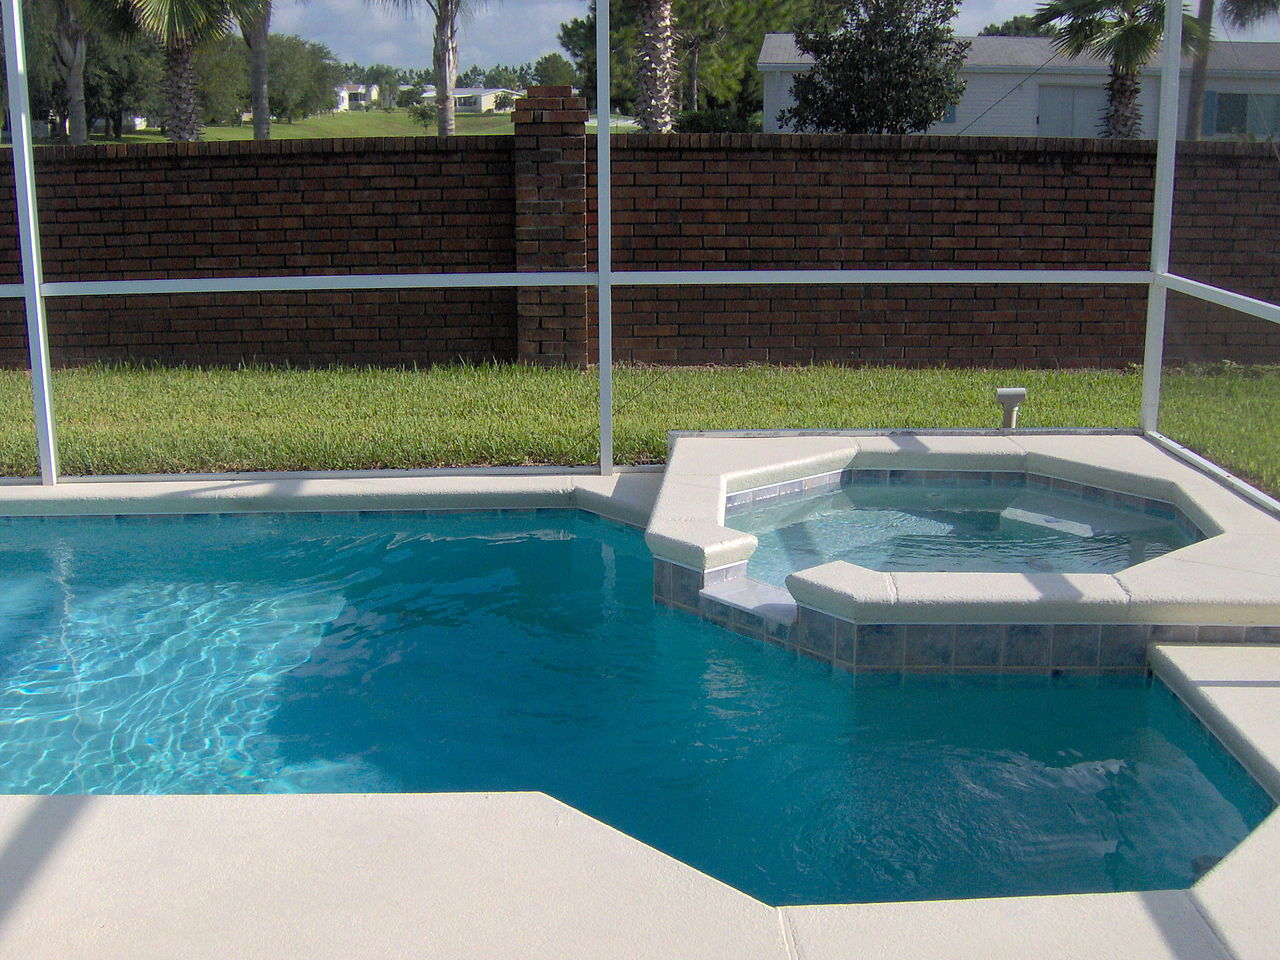 Jacuzzi In The Pool File Small Pool With Small Jacuzzi Jpg Wikimedia Commons